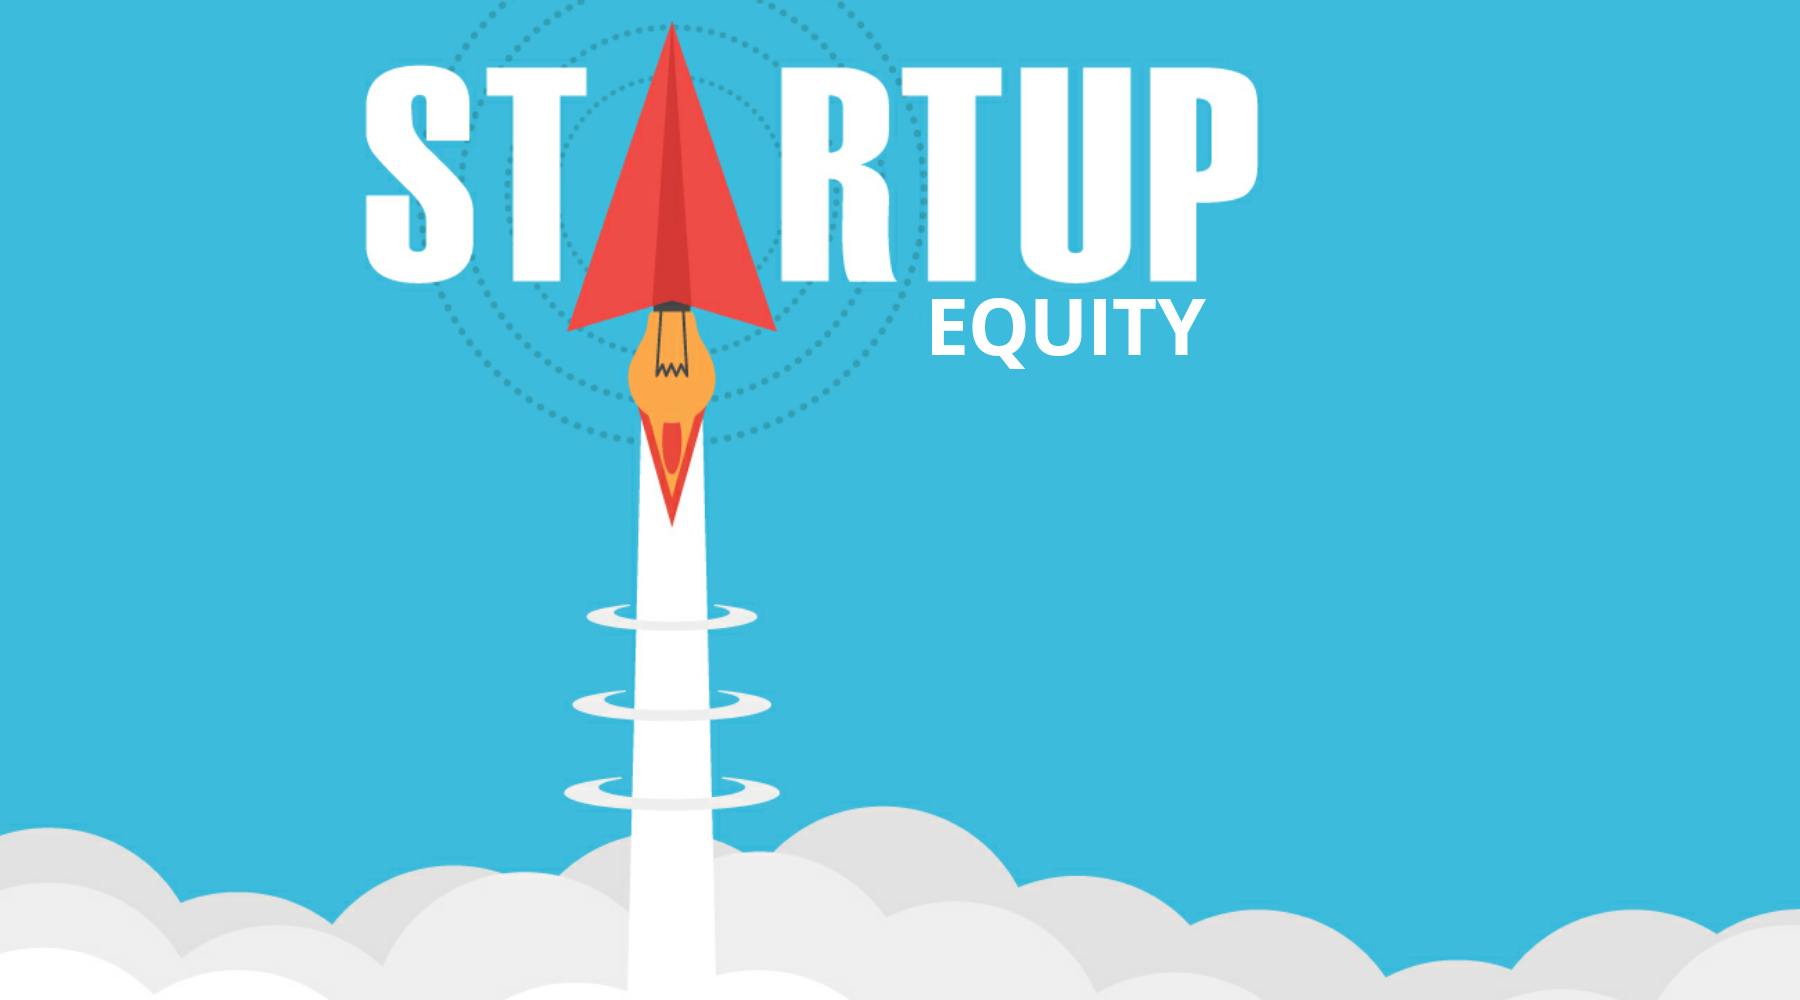 Start-up equity – Types and Tools for Calculations